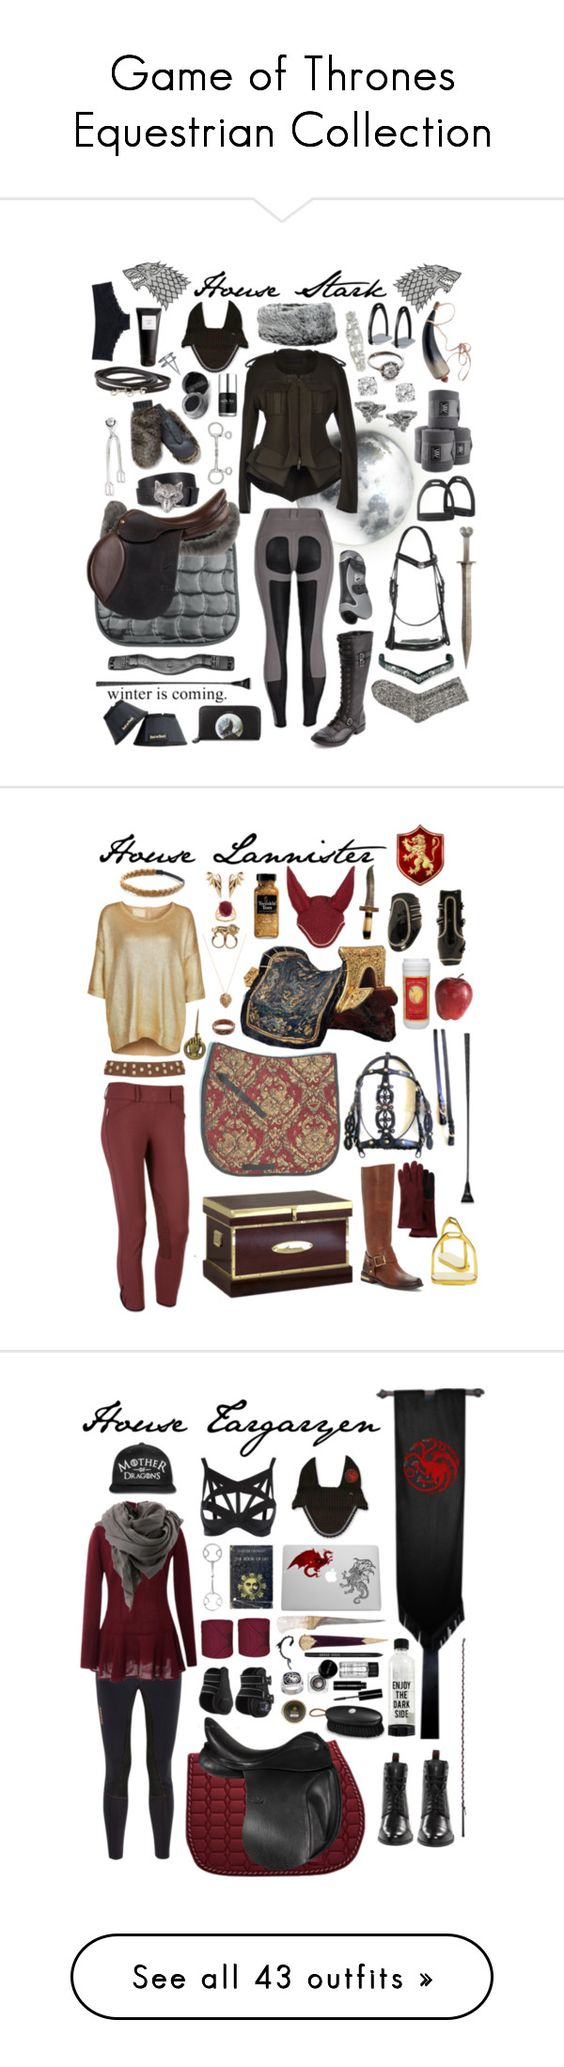 """""""Game of Thrones Equestrian Collection"""" by equine-couture ❤ liked on Polyvore featuring GameOfThrones, Lauren Wolf, Glitzy Rocks, Haider Ackermann, Diesel, Eight & Bob, Tressa, Charlotte Russe, C. Wonder and H&M"""